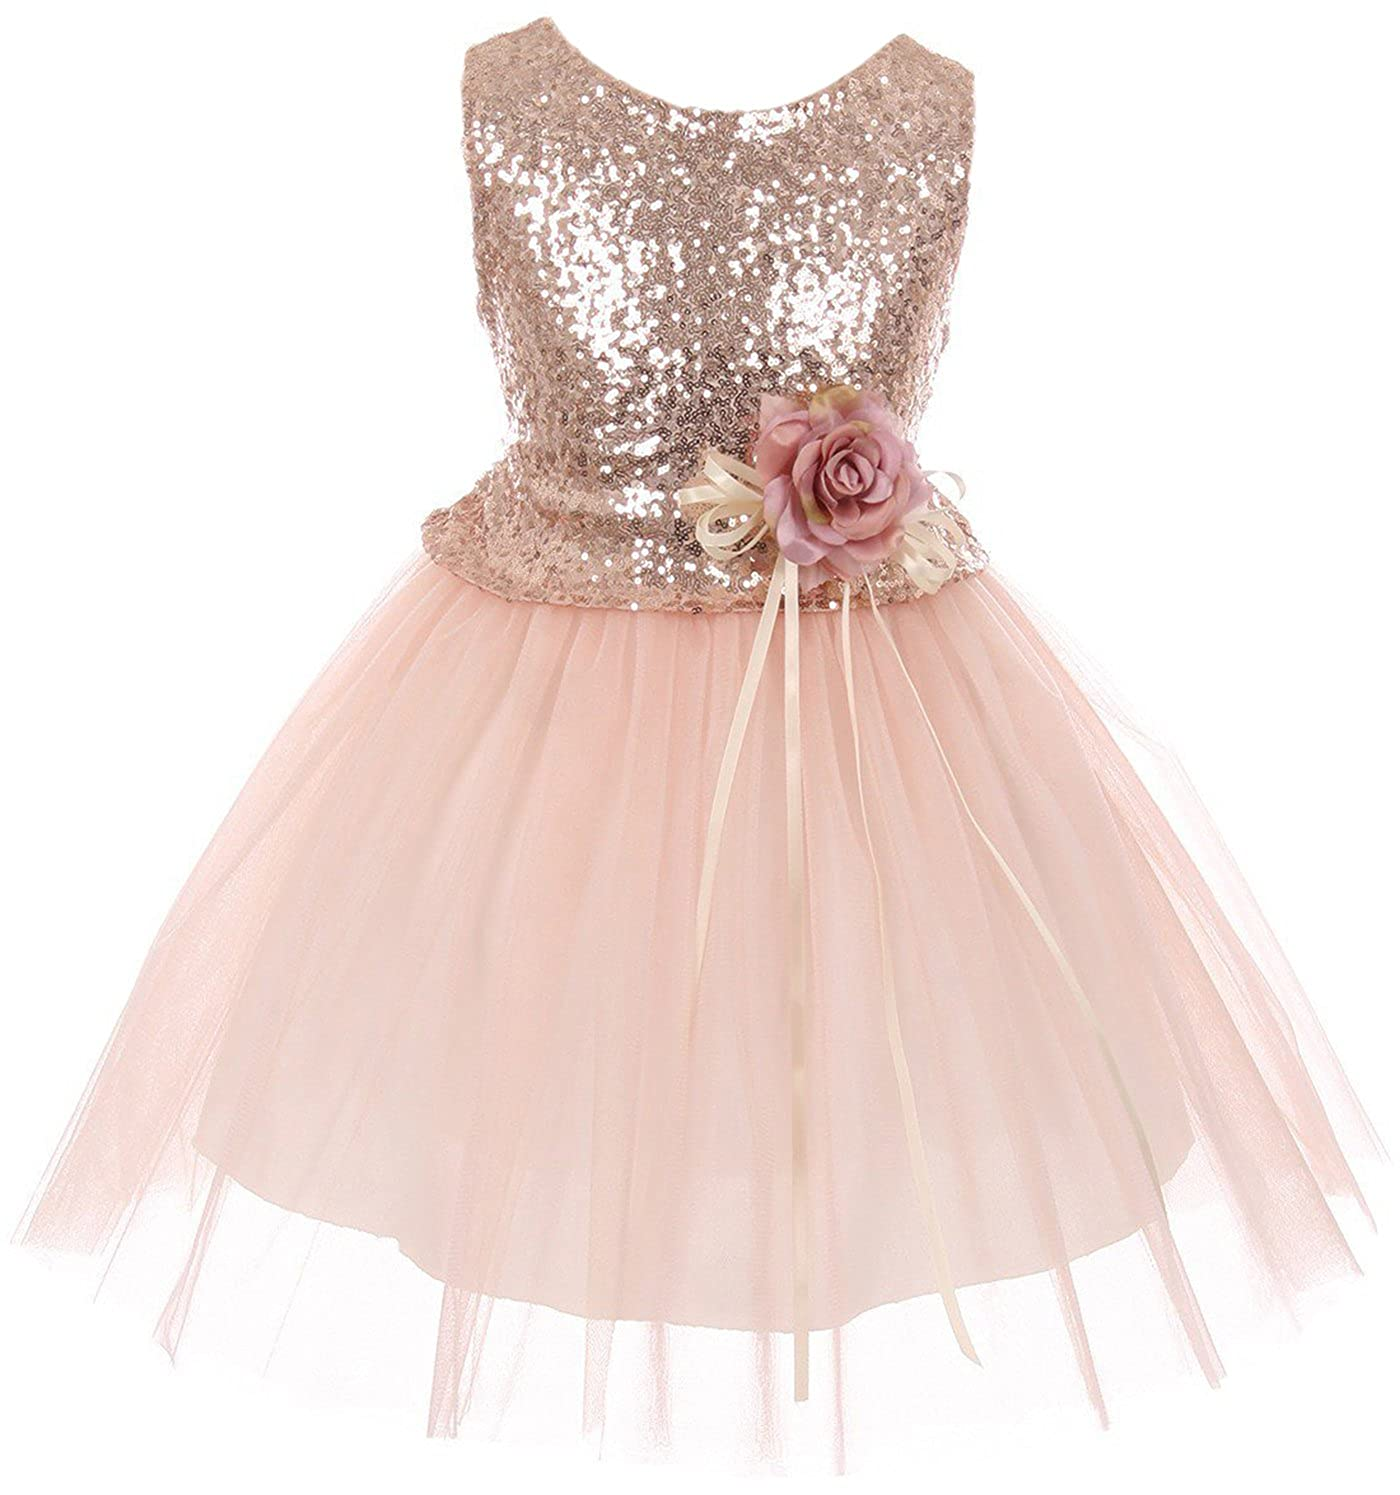 655f486a5 Sleeveless Sequin Glitter Flower Girl dress. Flower ornament attached to  the waist releasing an overlaid stunning skirt. Key-hole at back and tie  sash.